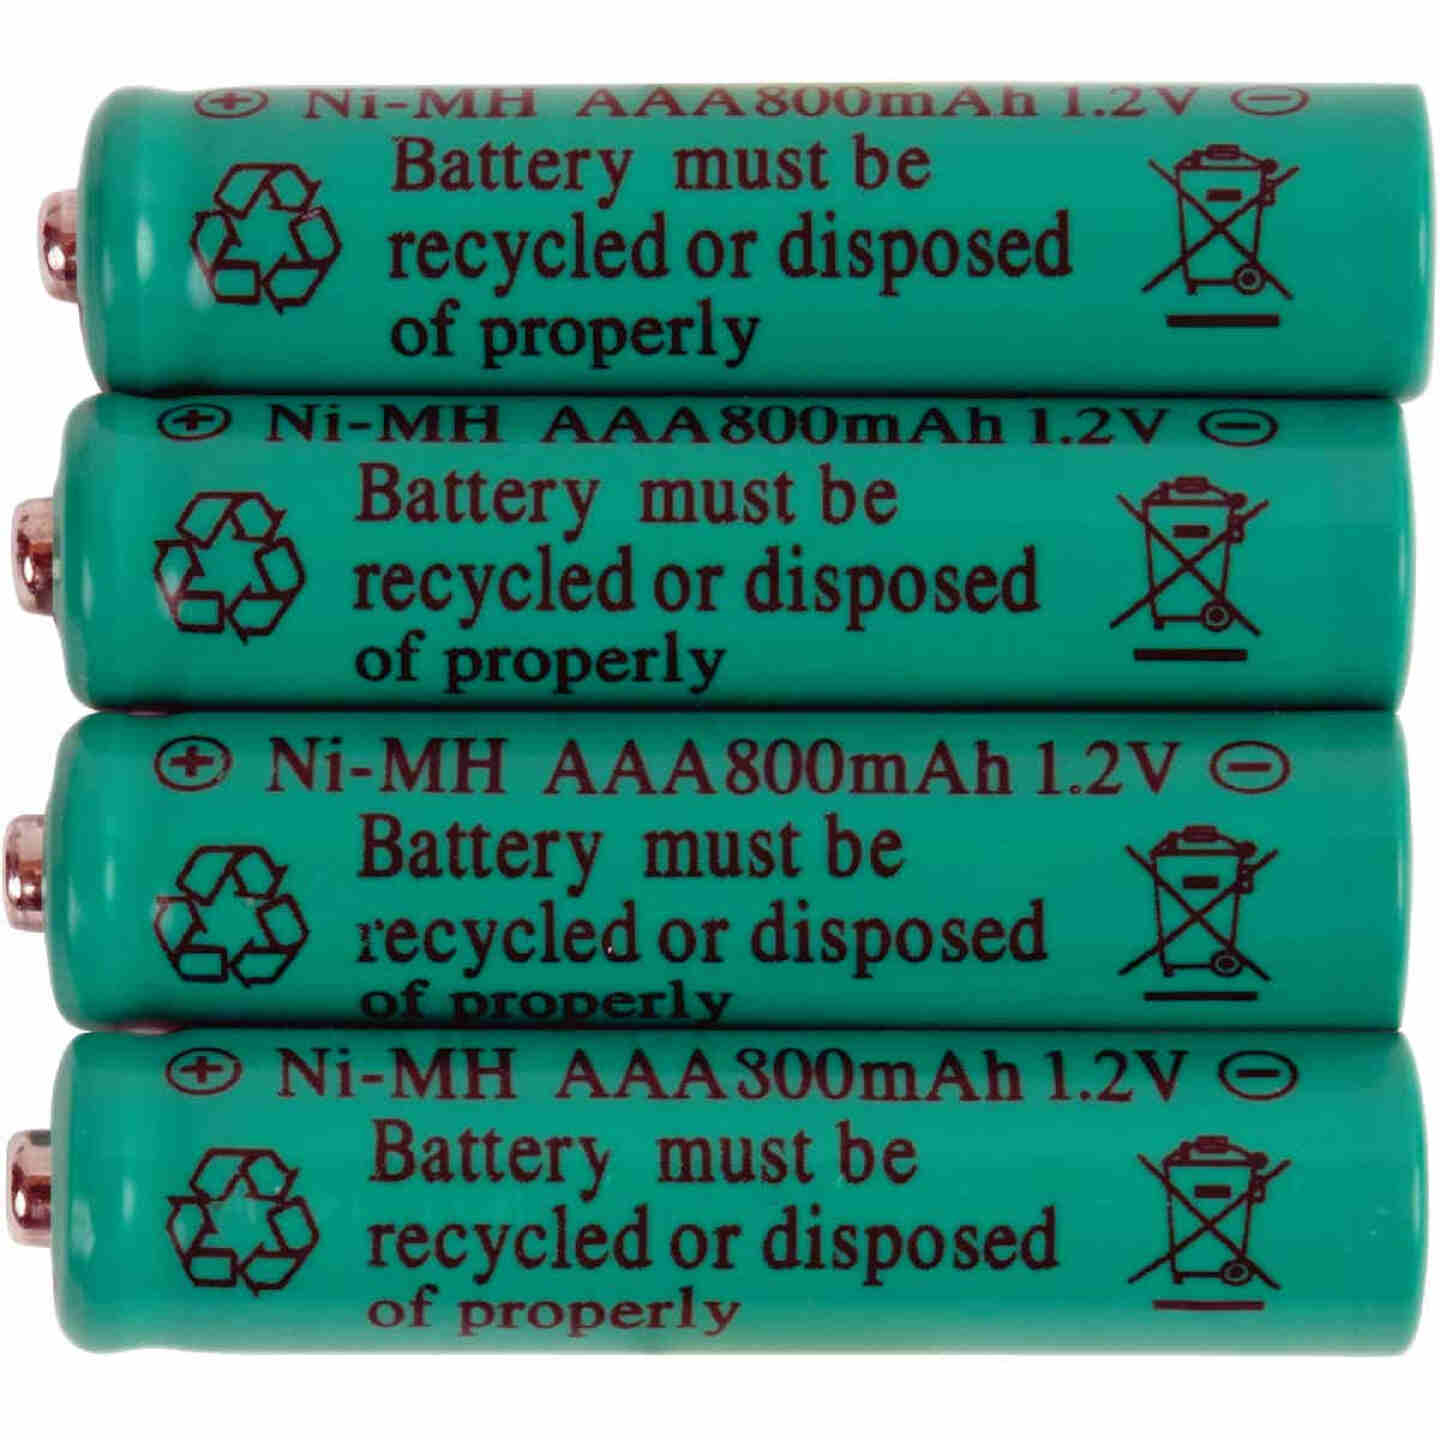 Fusion AAA 800 mAh Ni-MH Solar Replacement Battery (4-Pack) Image 2